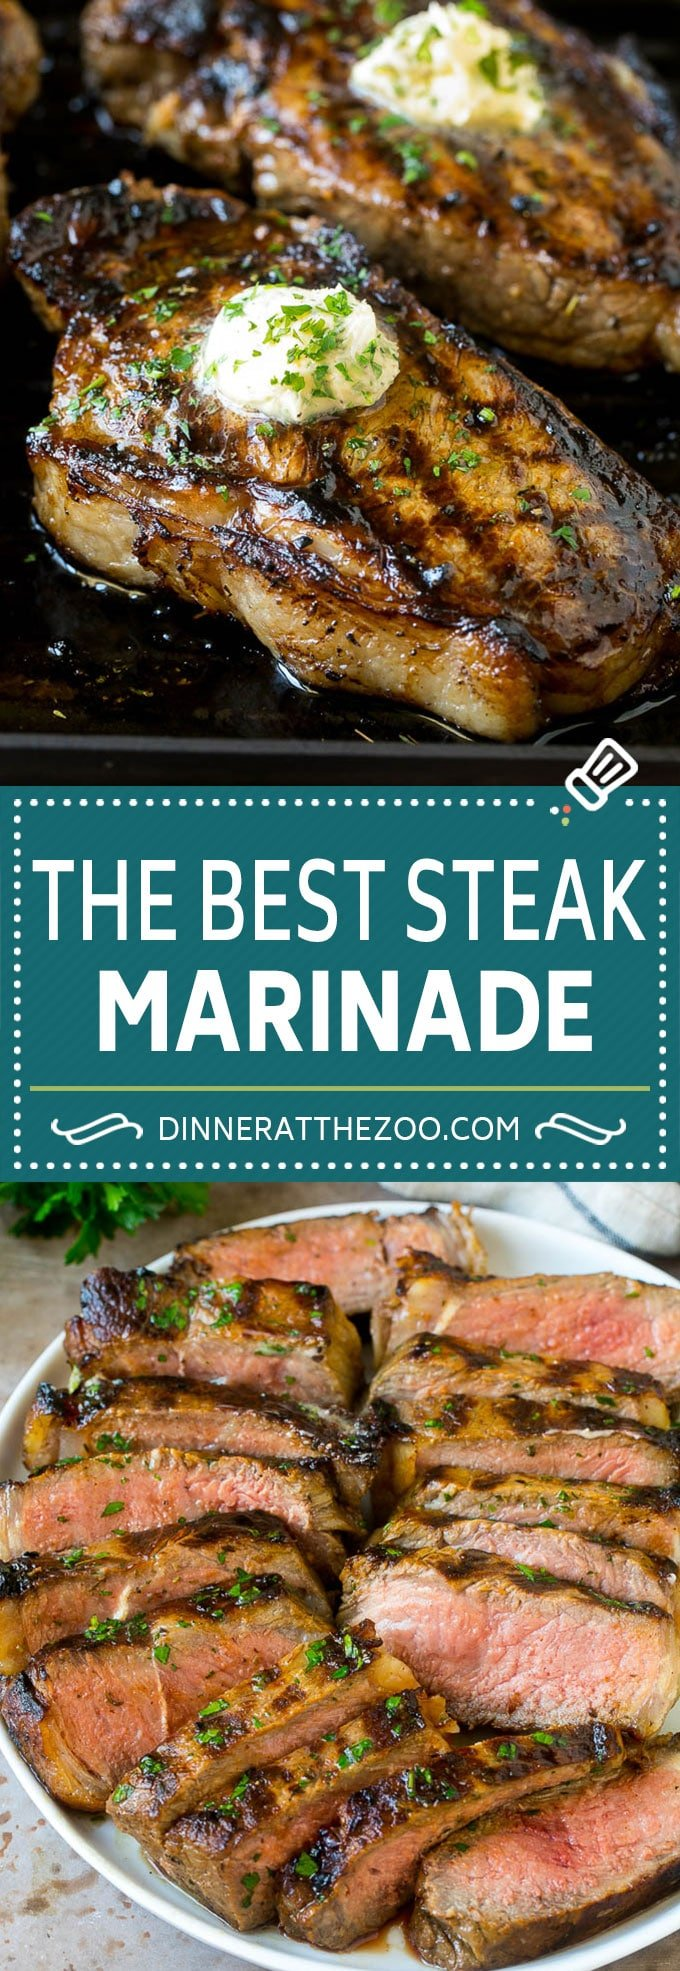 Steak Marinade Recipe | Marinated Steak | Grilled Steak #steak #keto #lowcarb #grilling #marinade #dinner #dinneratthezoo